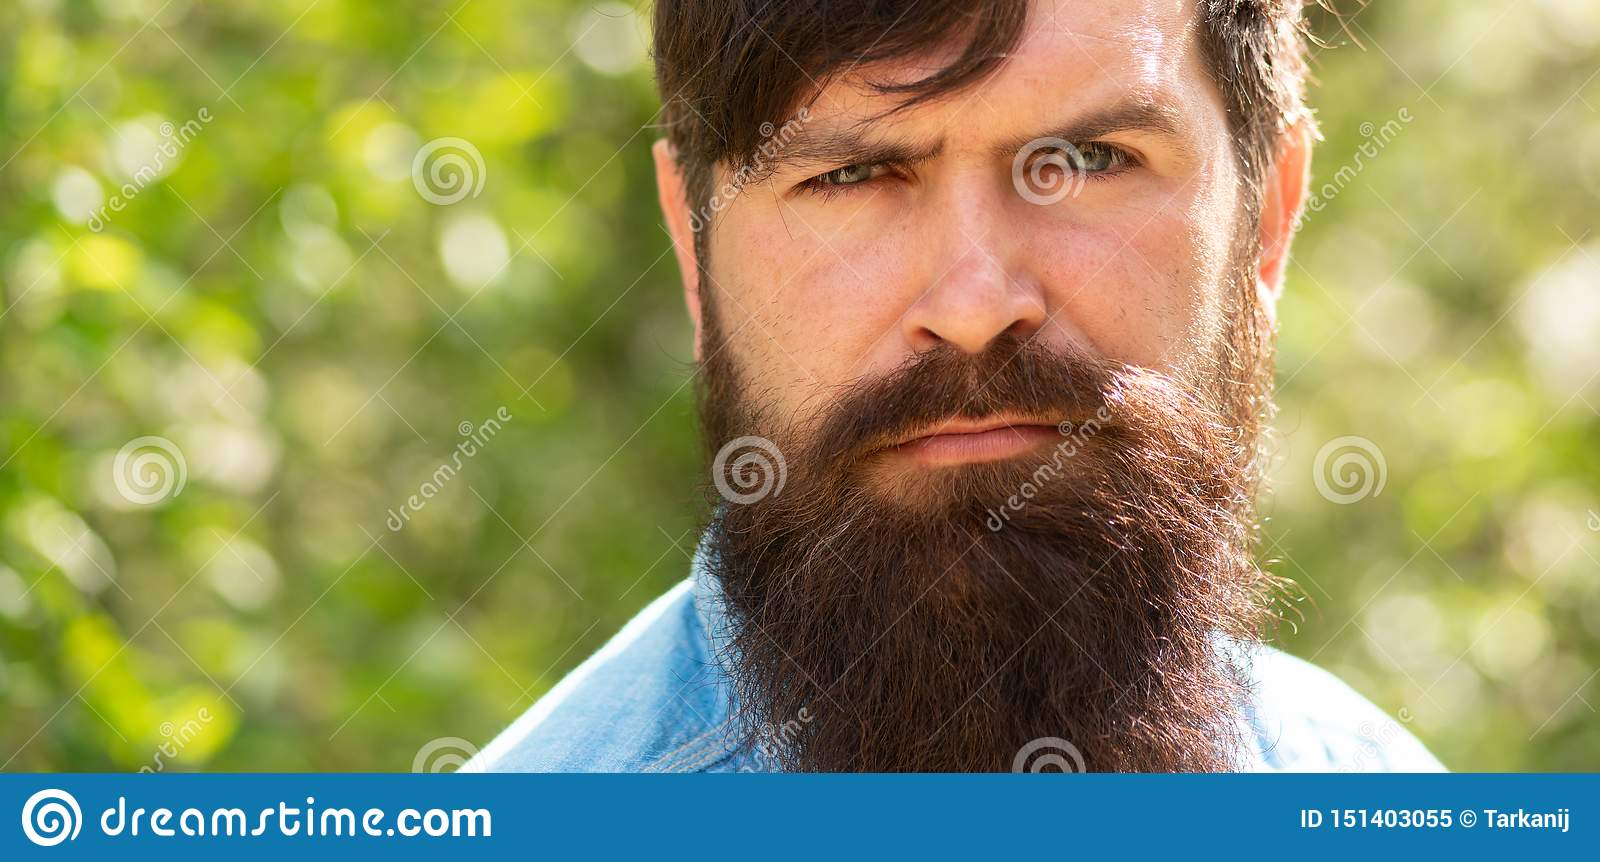 Man on nature background. Bearded guy. Young male hipster. Attractive man with green eyes. Male portrait. Handsome guy